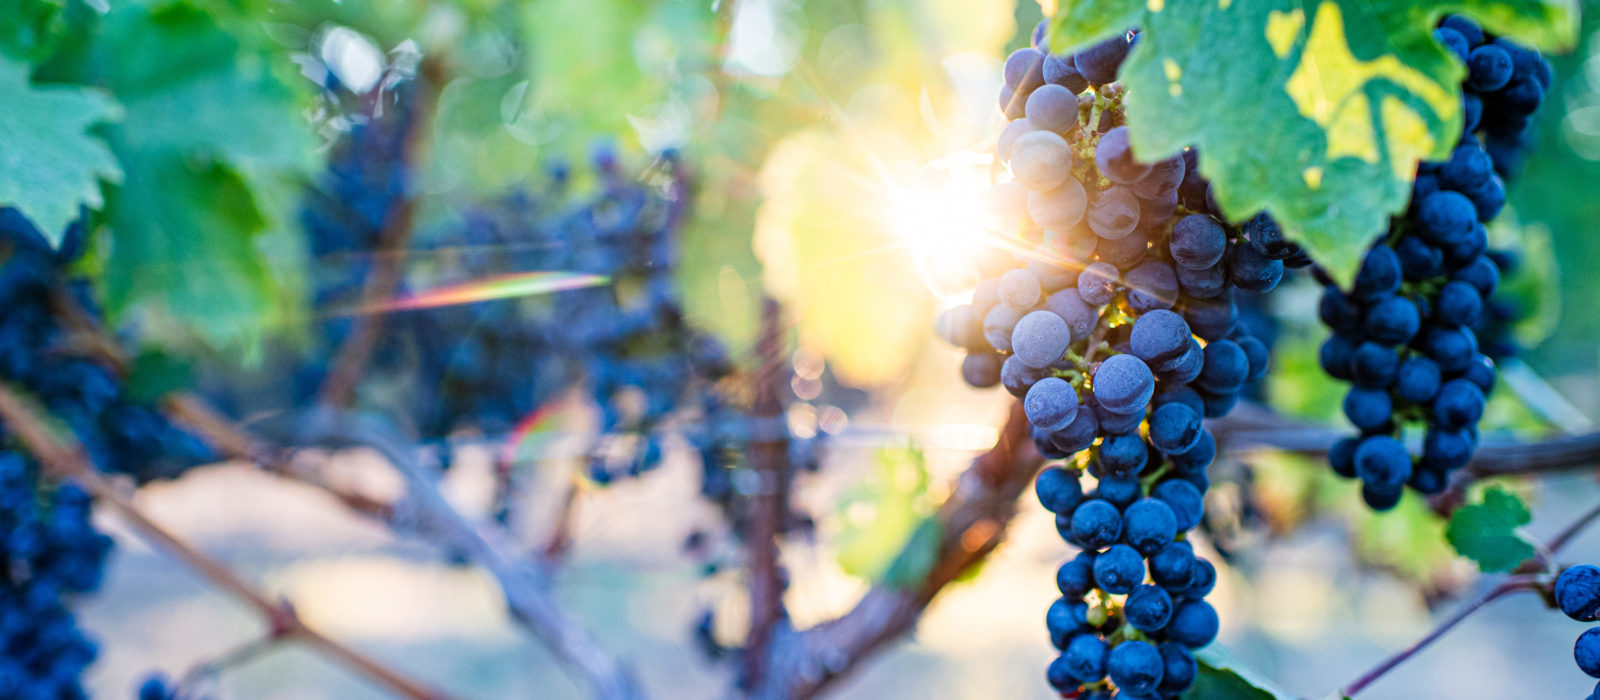 closeup of grapes on the vine with sun shining through